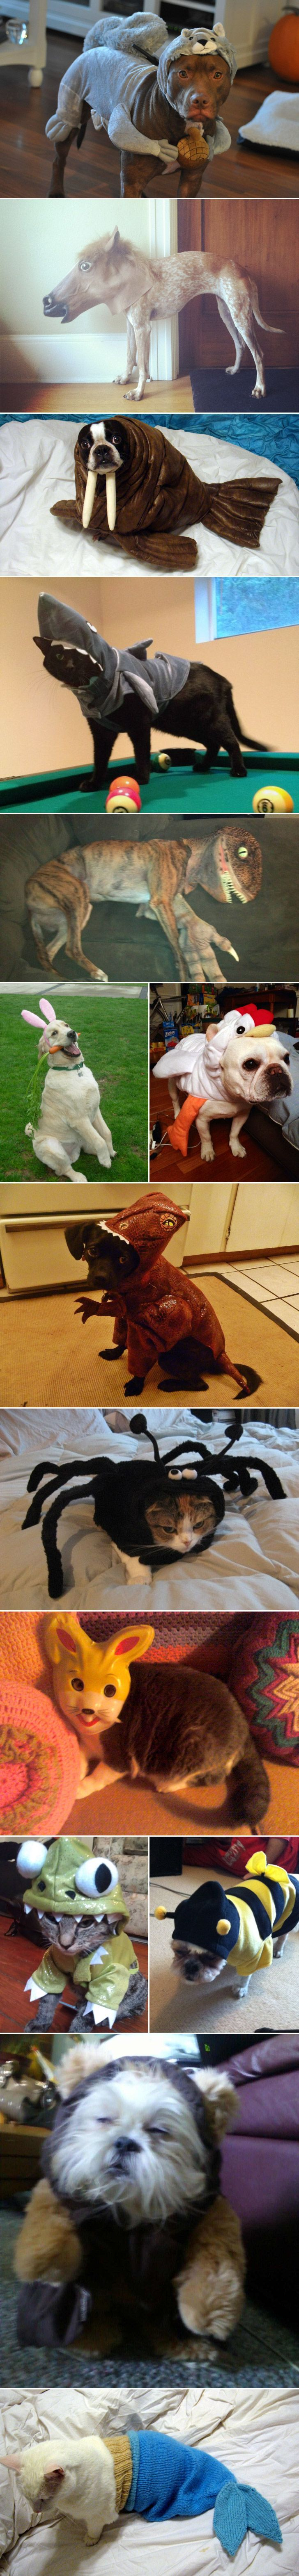 Animals dressed as other animals. Hysterical.